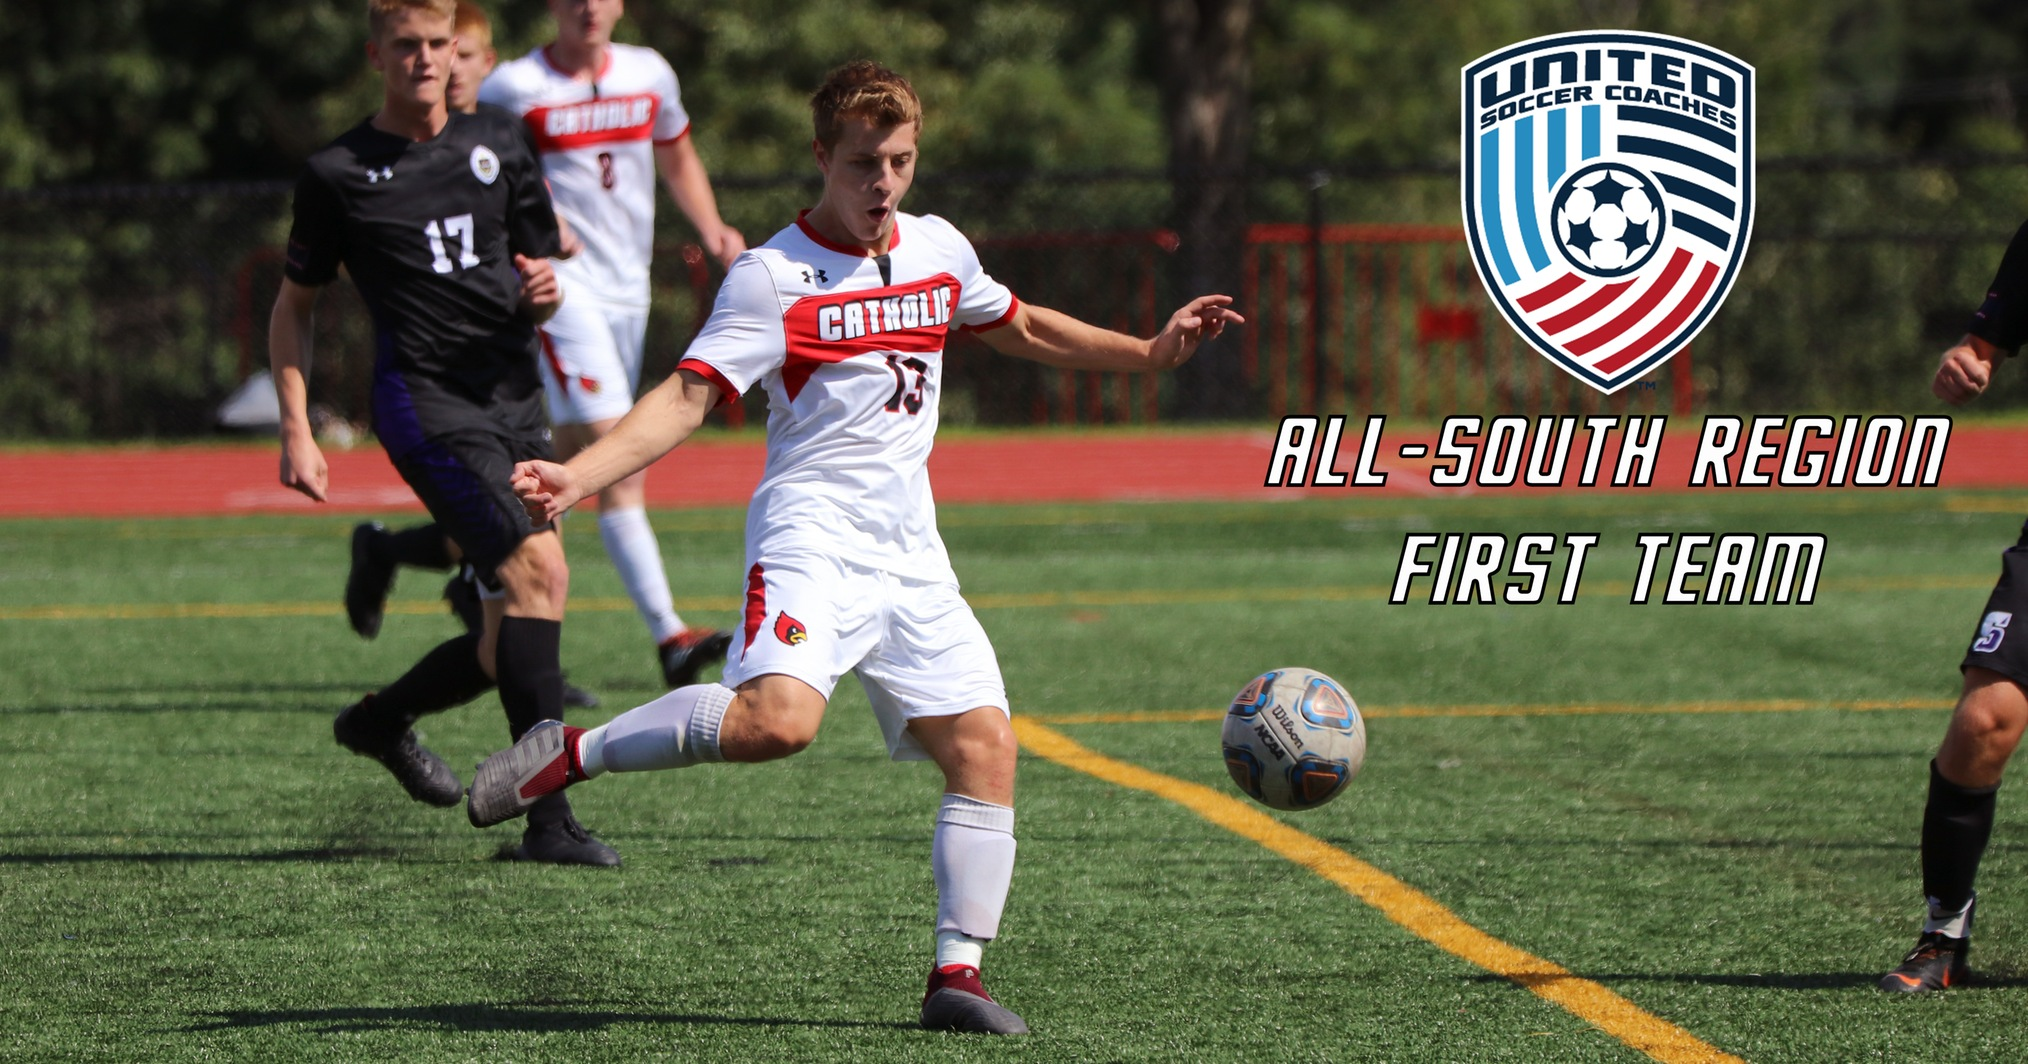 Galfond Named United Soccer Coaches Scholar All-Region